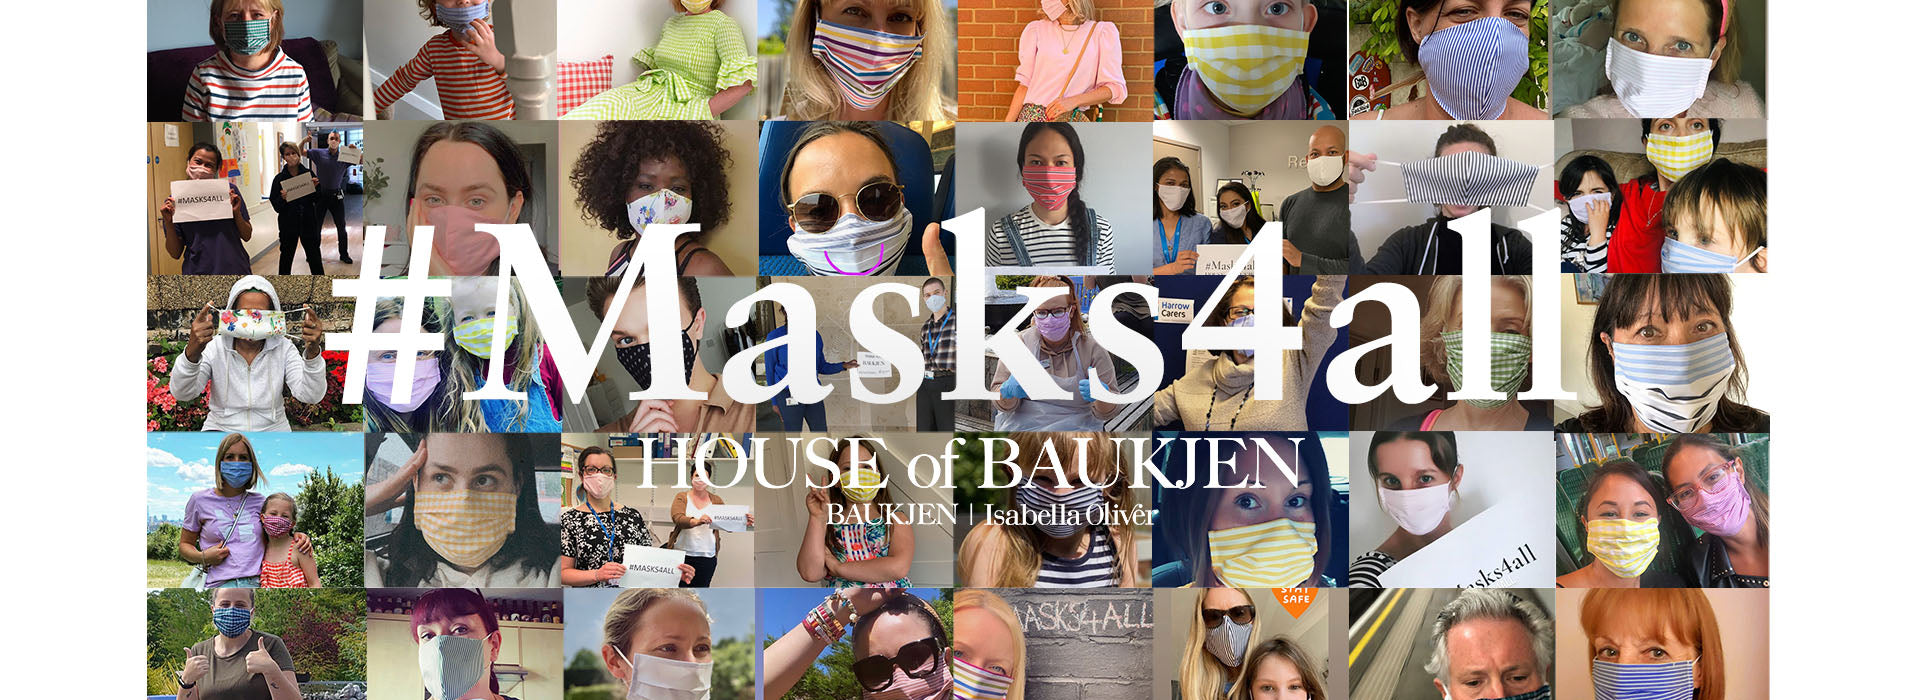 #Masks4all - Vogue face mask image